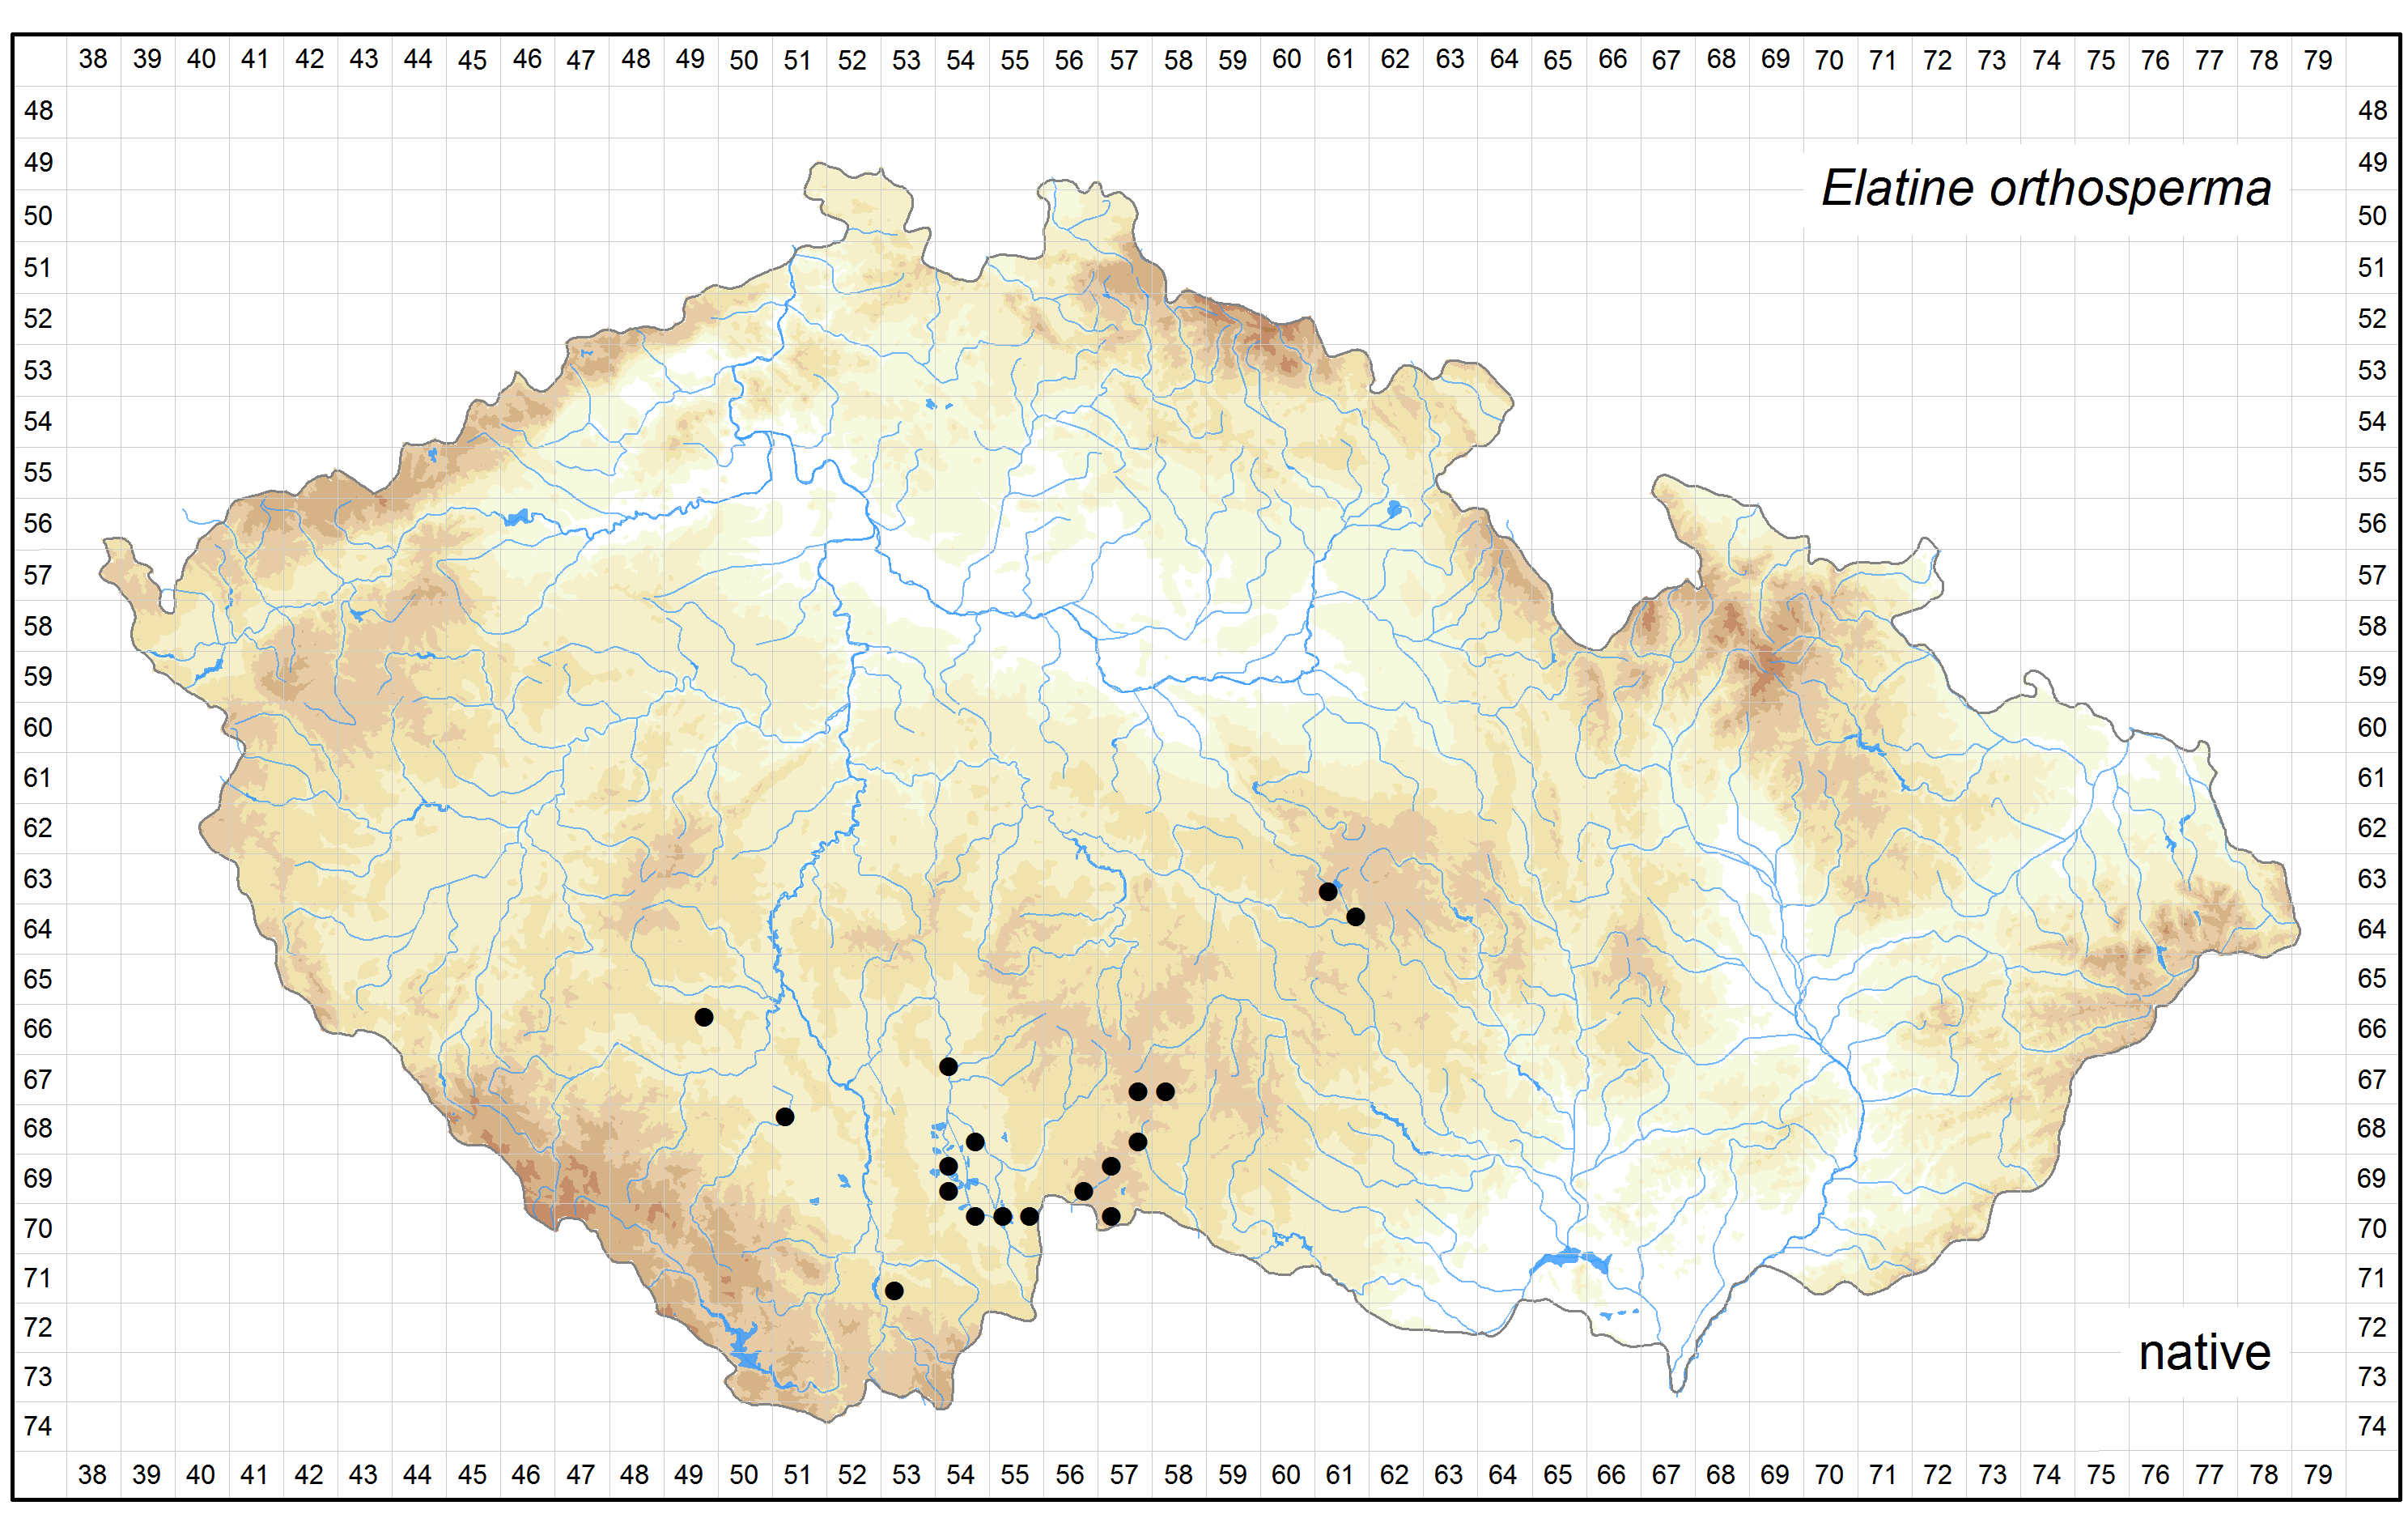 Distribution of Elatine orthosperma in the Czech Republic Author of the map: Zdenek Kaplan, Jan Prančl, Kateřina Šumberová Map produced on: 18-11-2015 Database records used for producing the